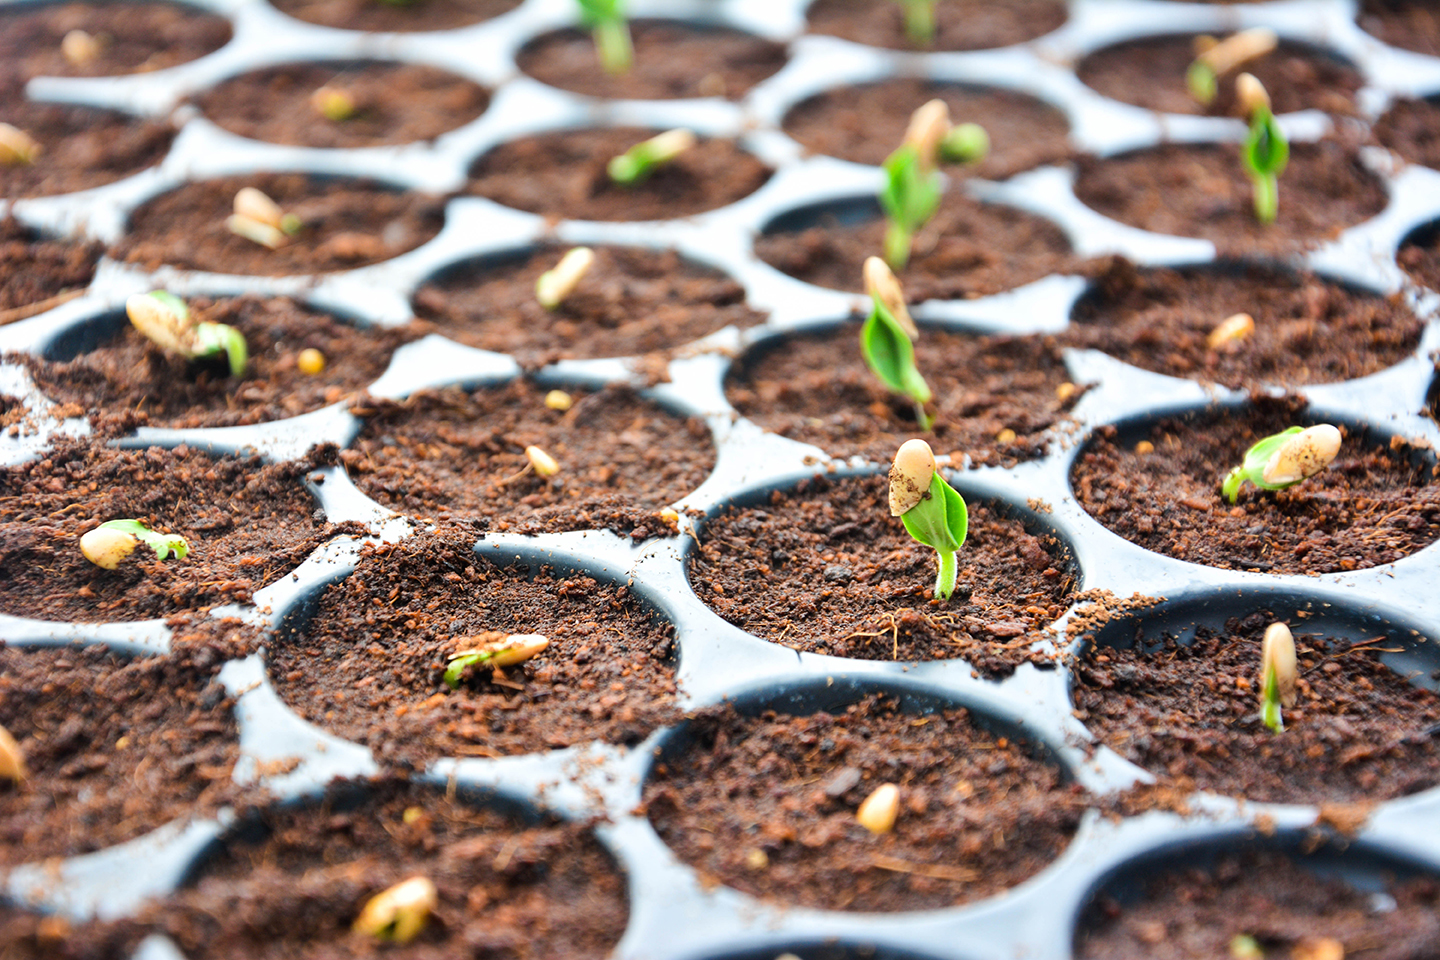 Seedling Plants in Containers